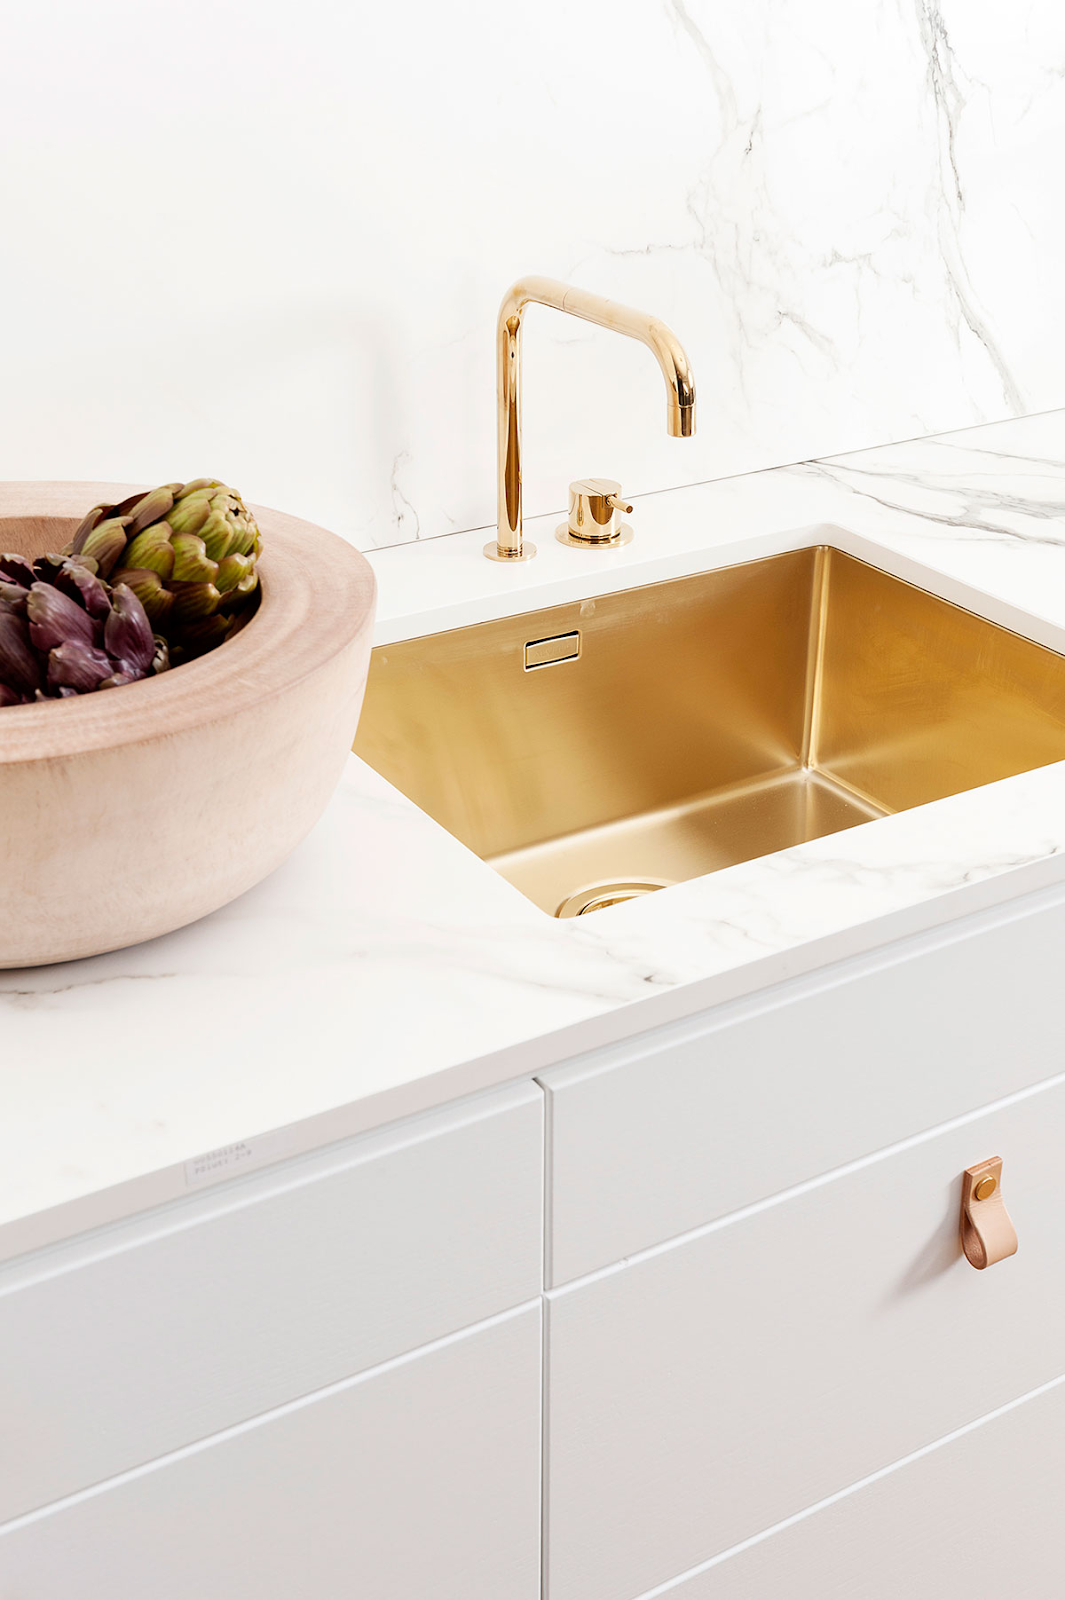 matte gold kitchen sink with gold faucet and white flat panel cabinets, surrounded by white marble countertop and backsplash